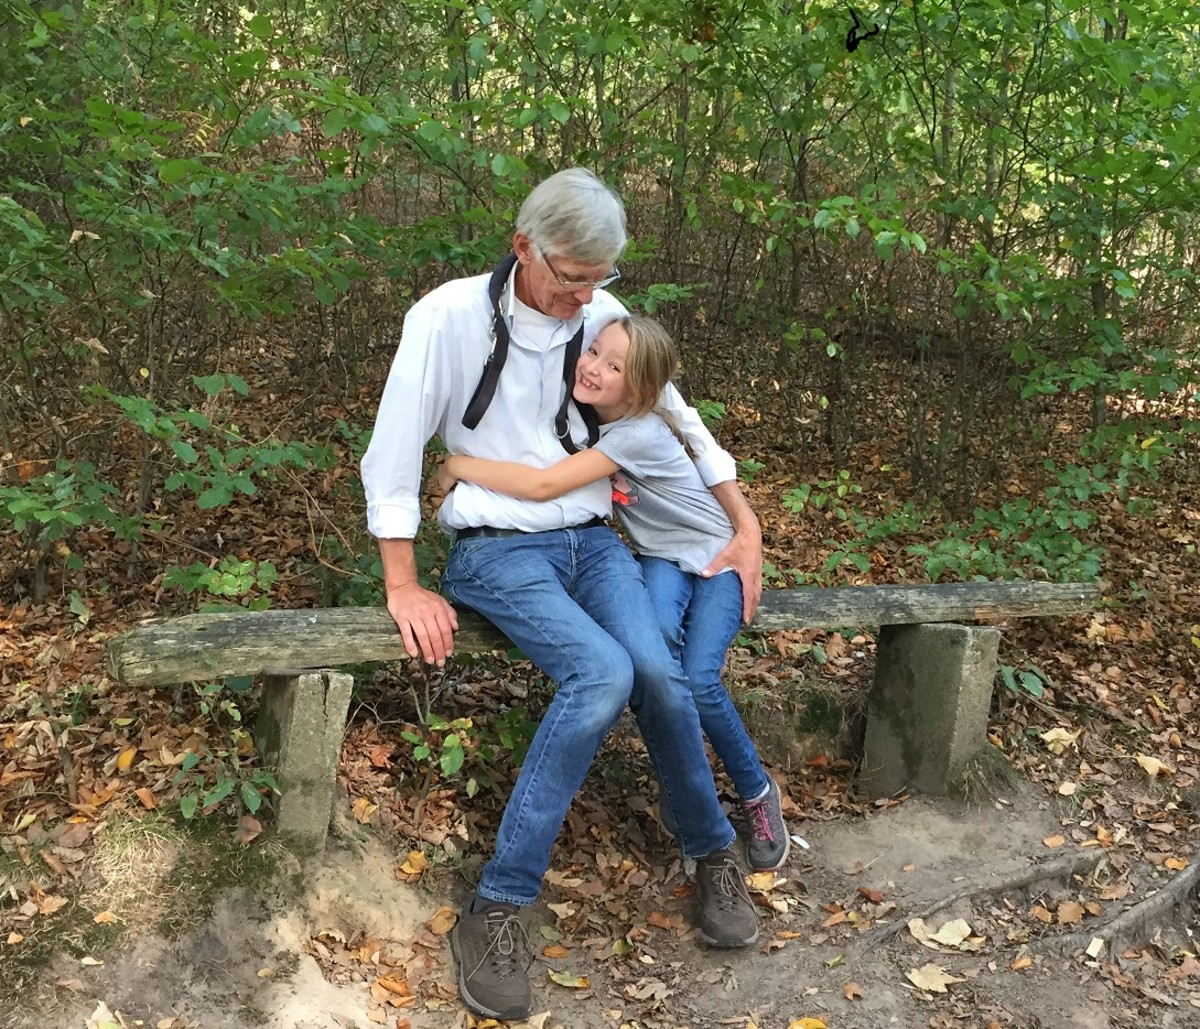 Granddaughter with Grandfather